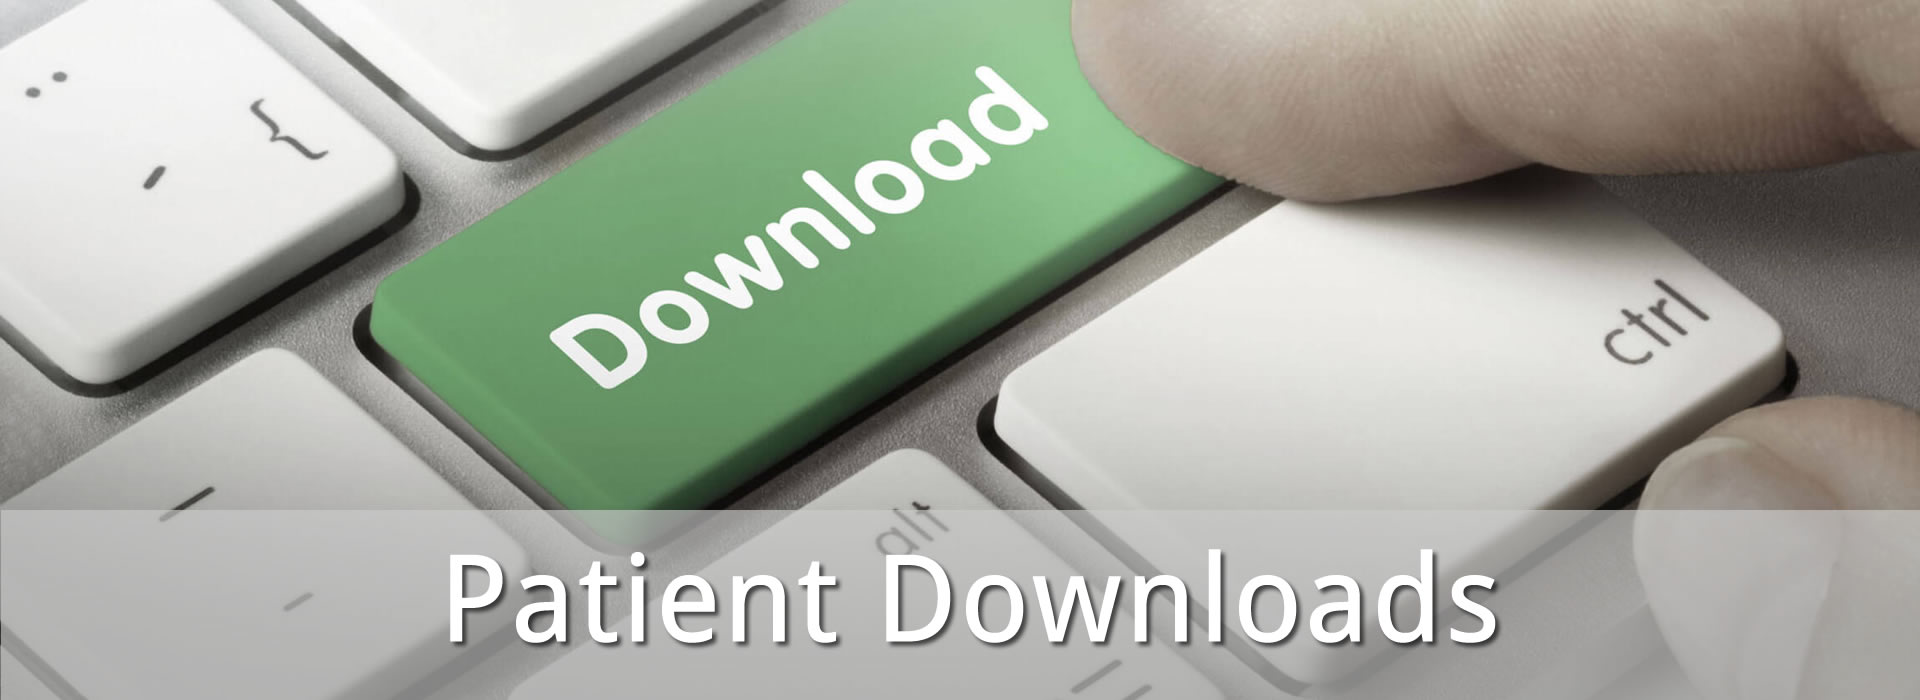 Patient Downloads